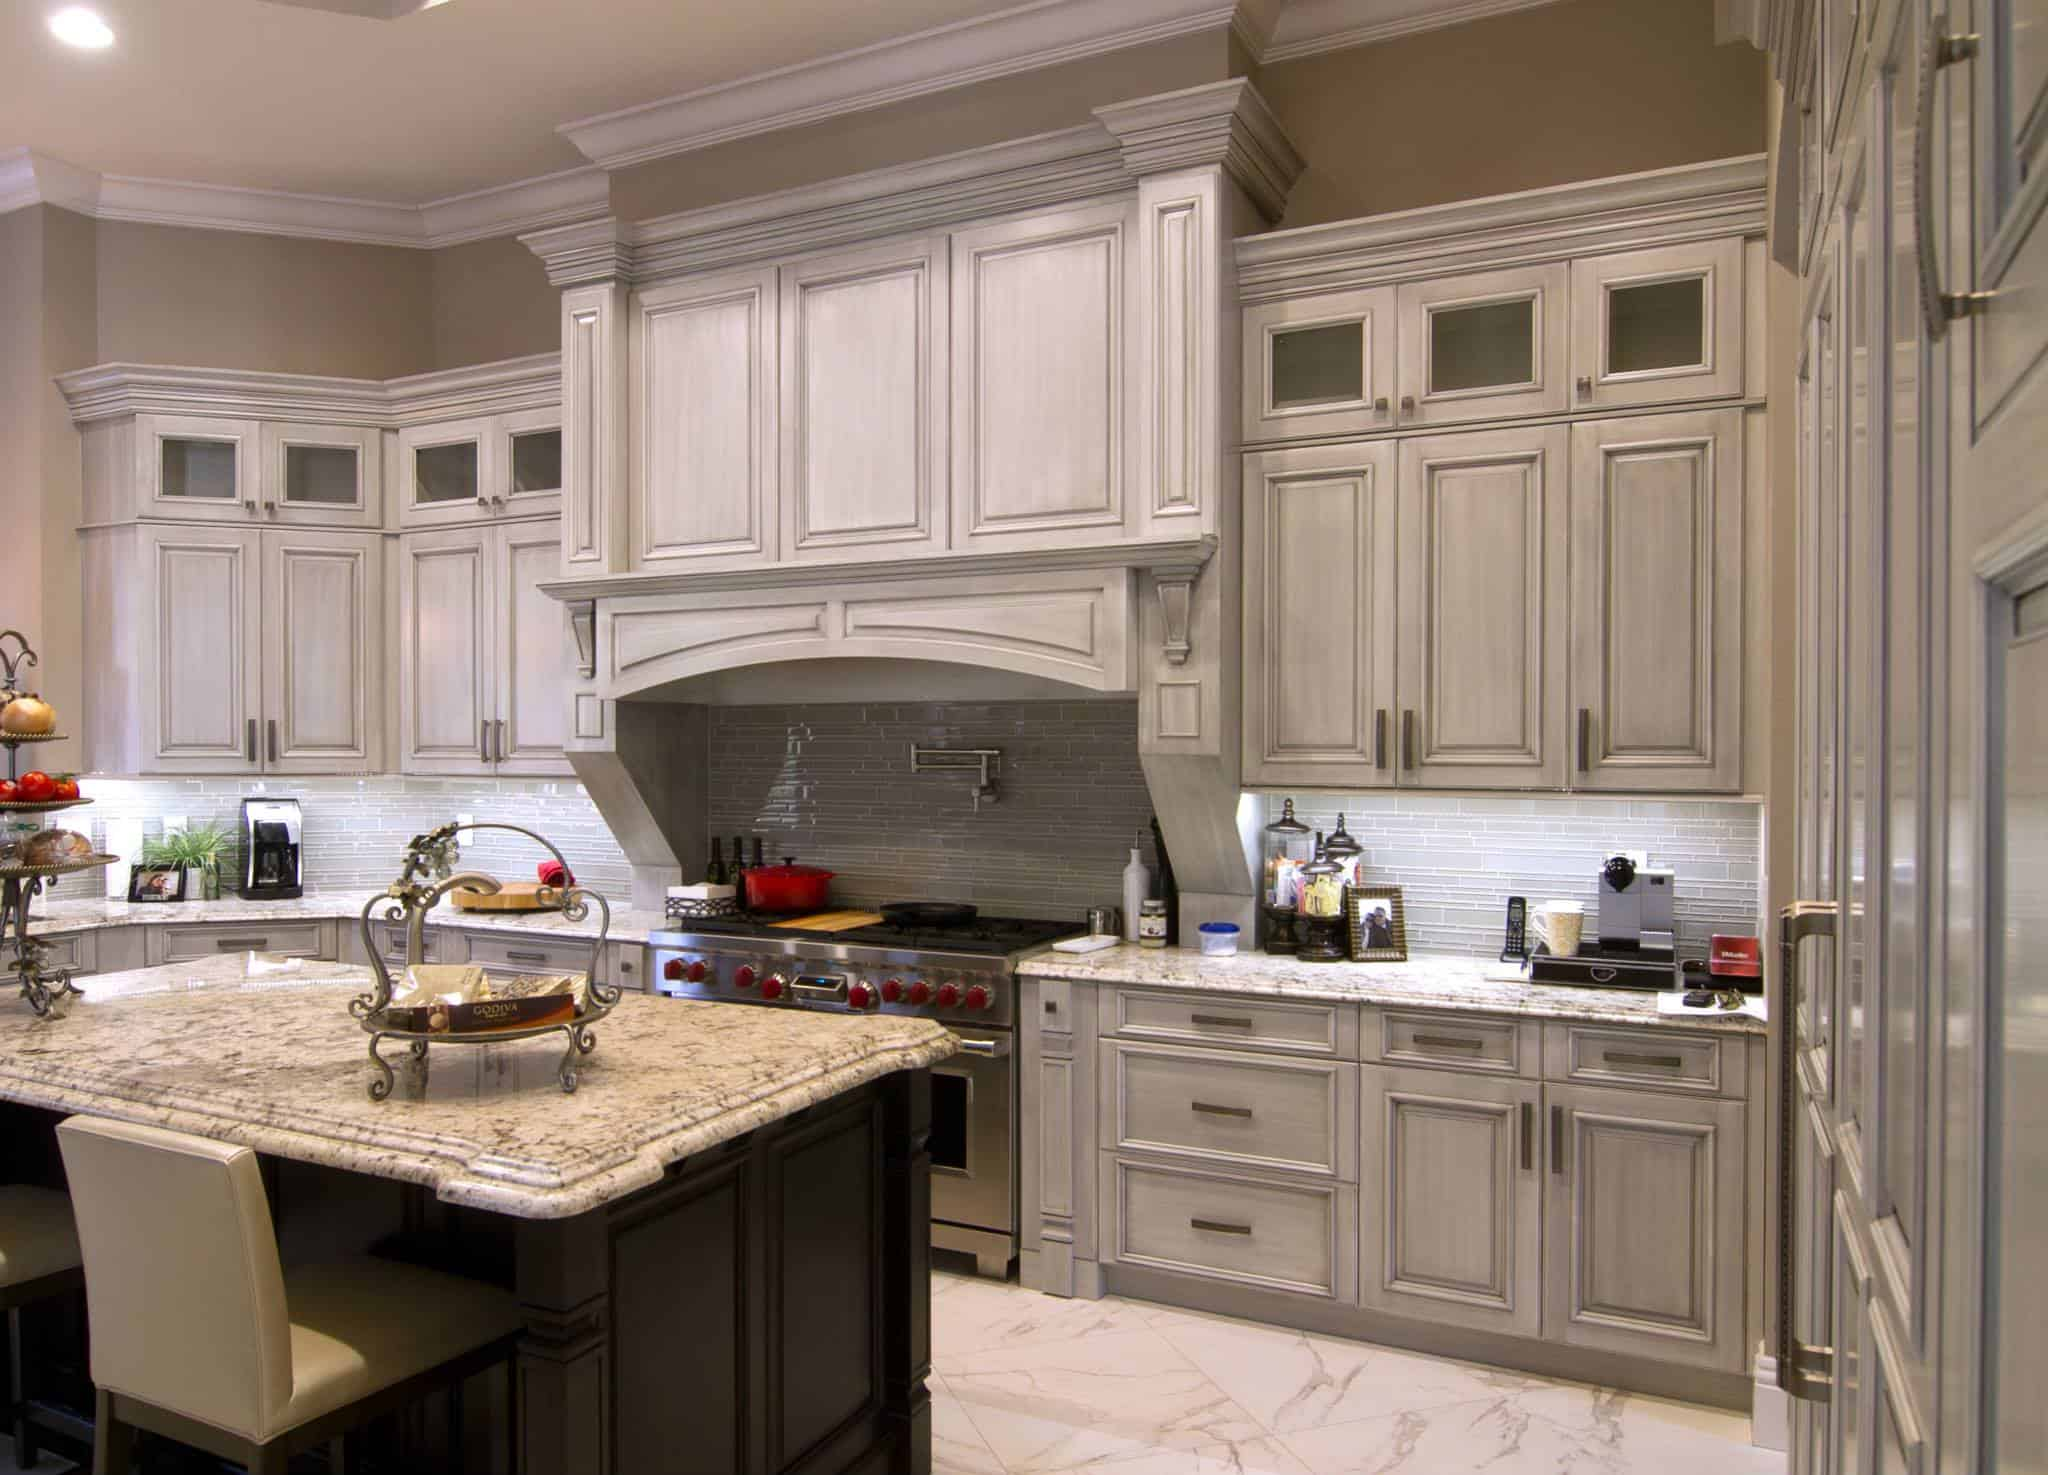 Kitchen cabinets mccabinet - Kitchen images with white cabinets ...